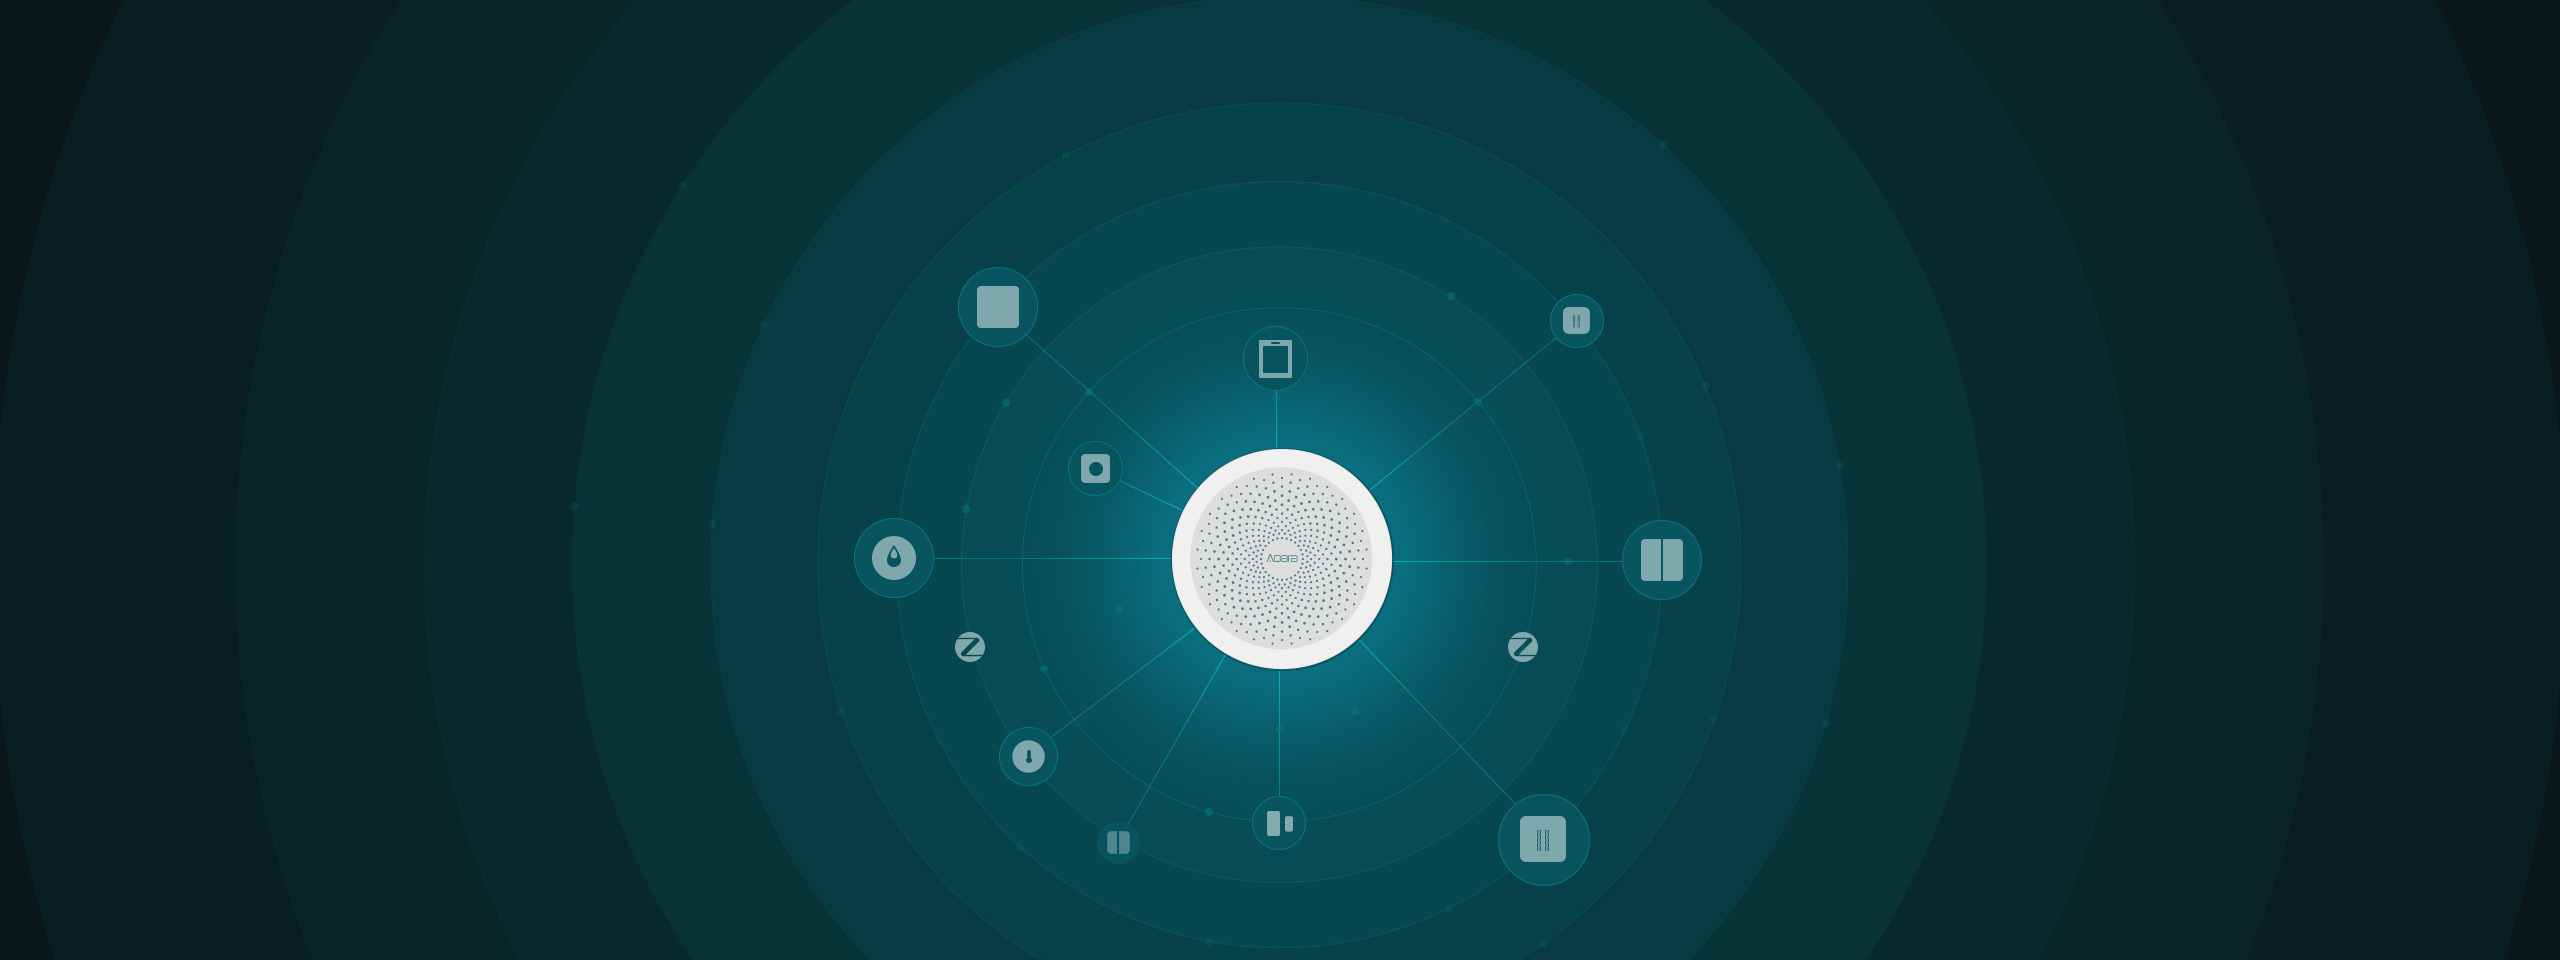 Aqara hub - smart home gateway